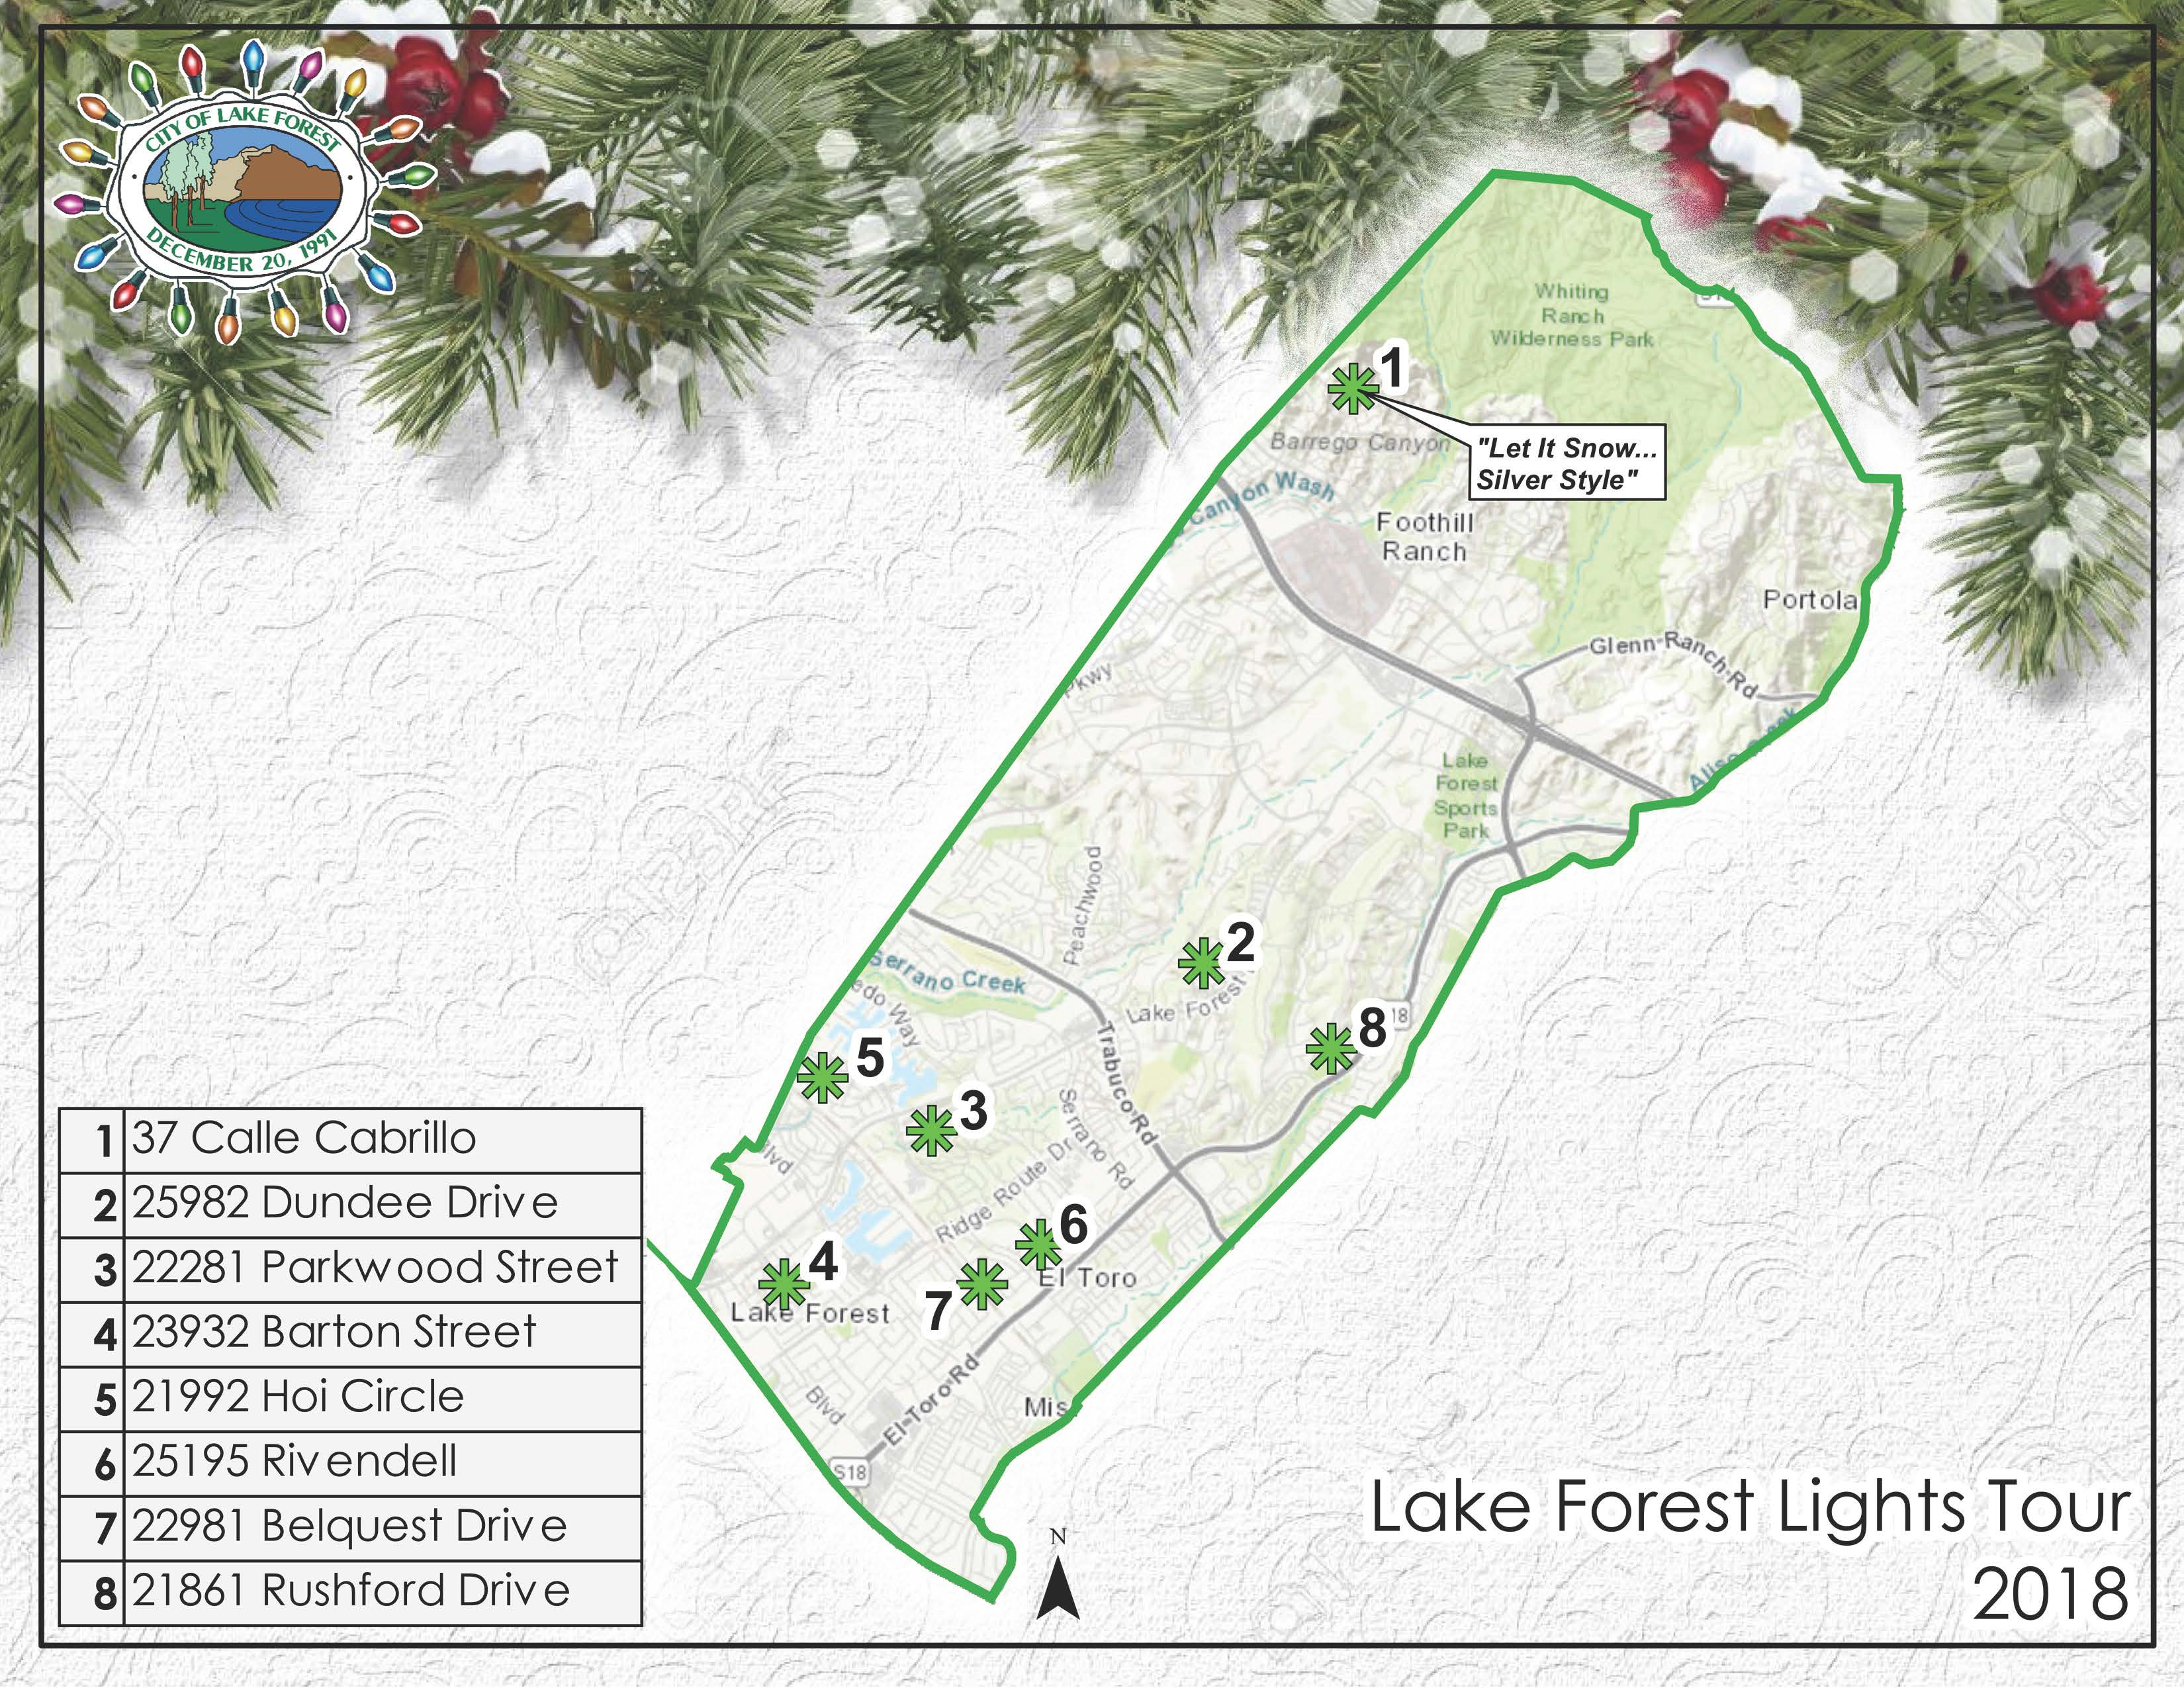 Lake Forest Lights Tour Map 2018